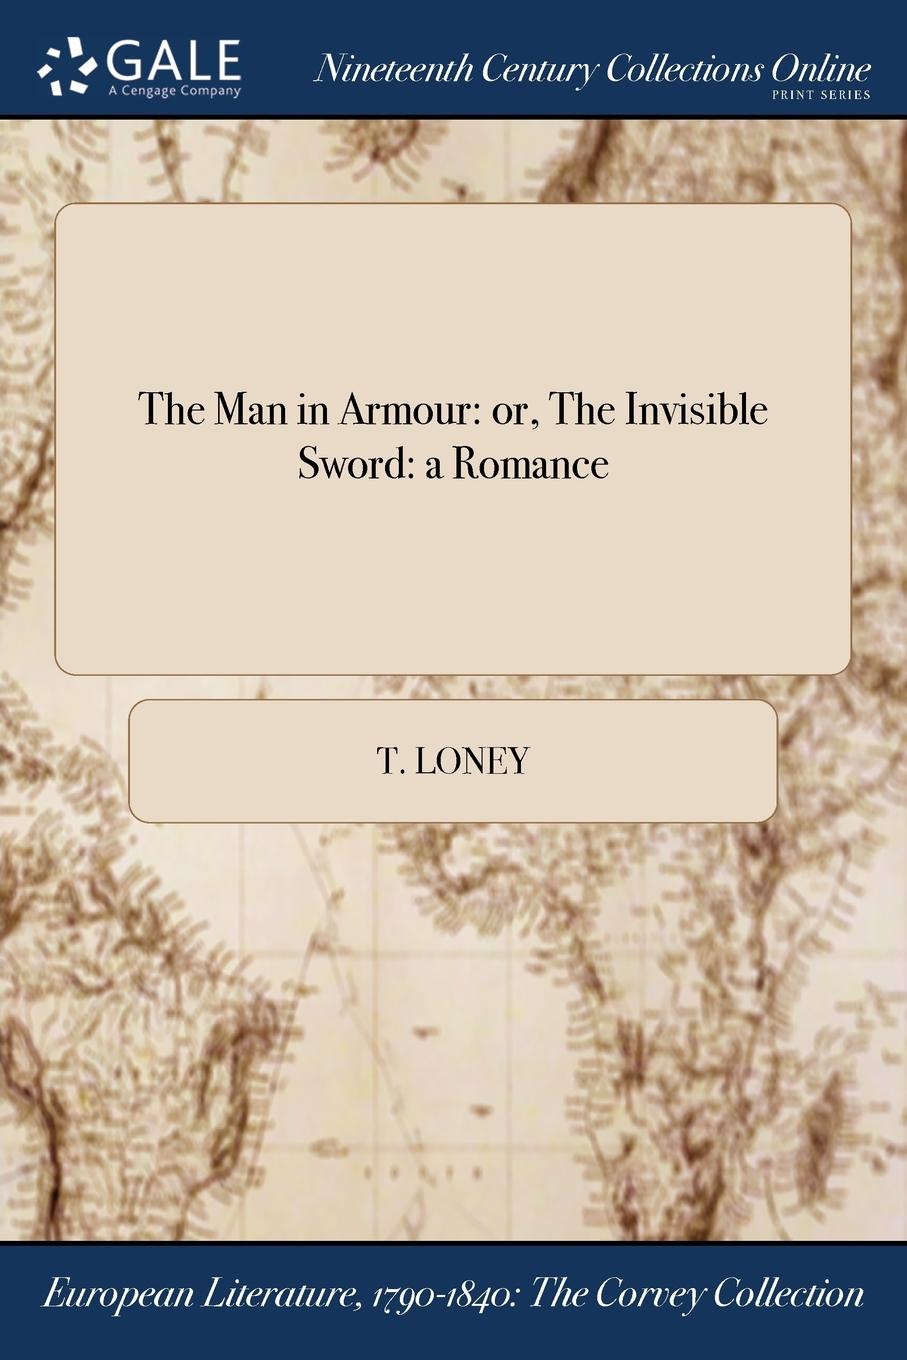 T. Loney The Man in Armour. or, The Invisible Sword: a Romance